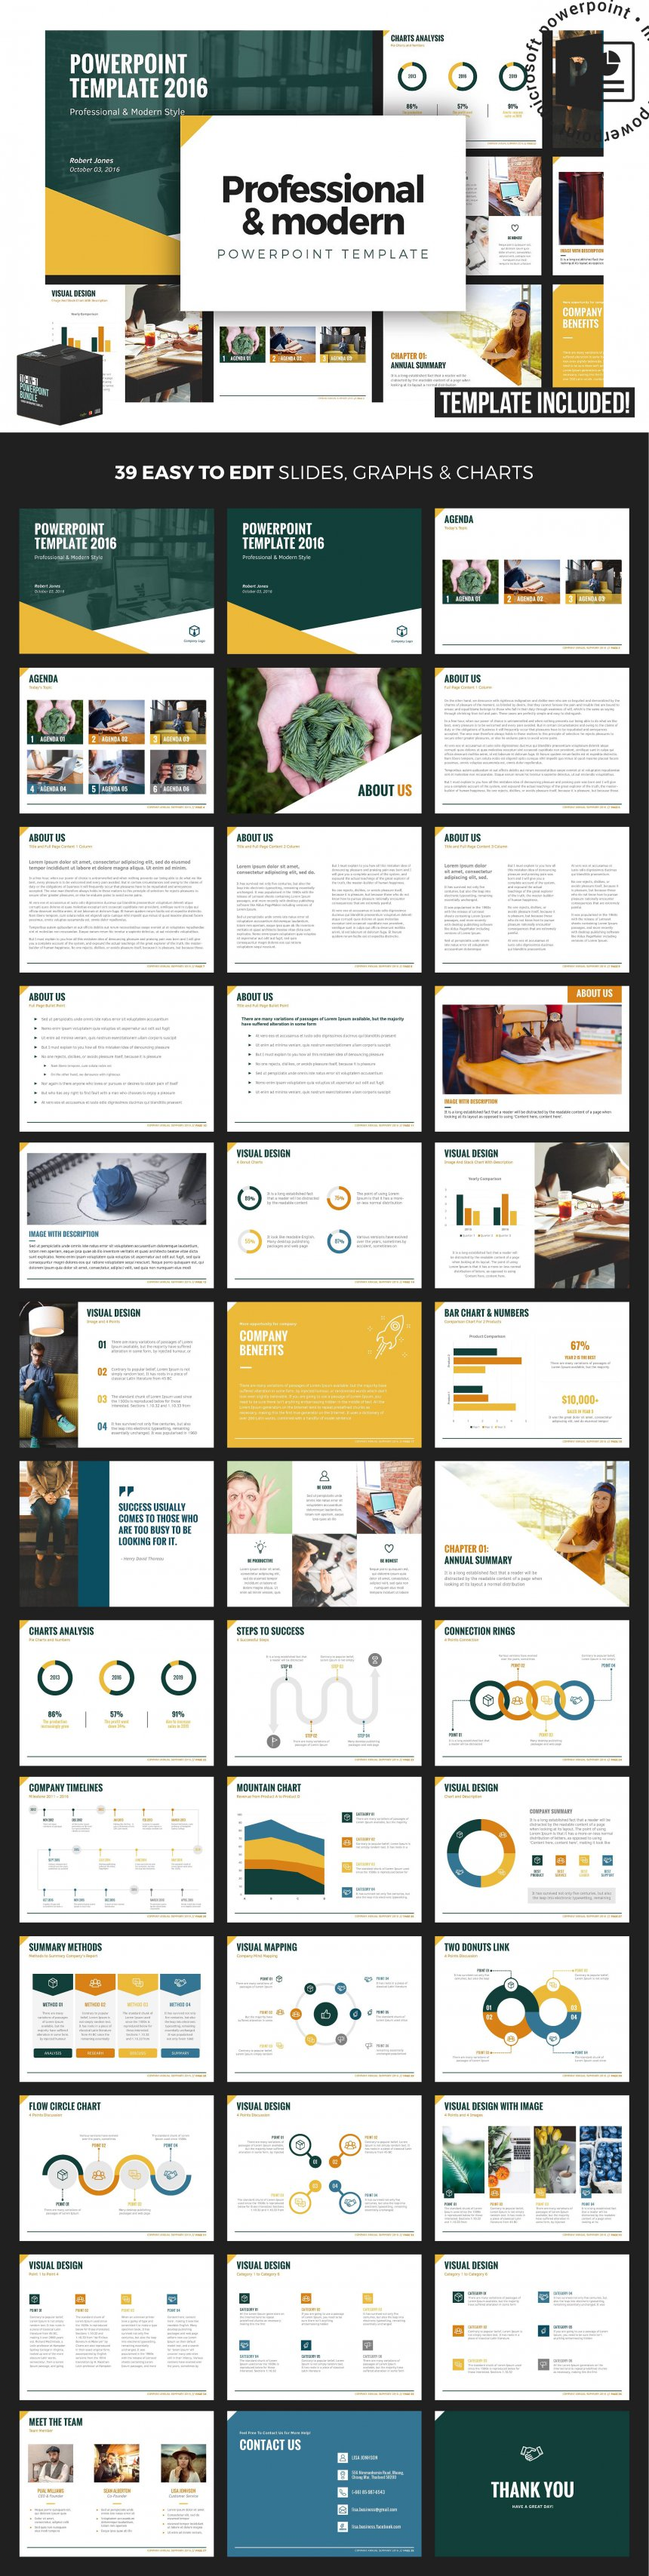 10 creative and professional powerpoint templates plus bonuses professional modern powerpoint template toneelgroepblik Image collections